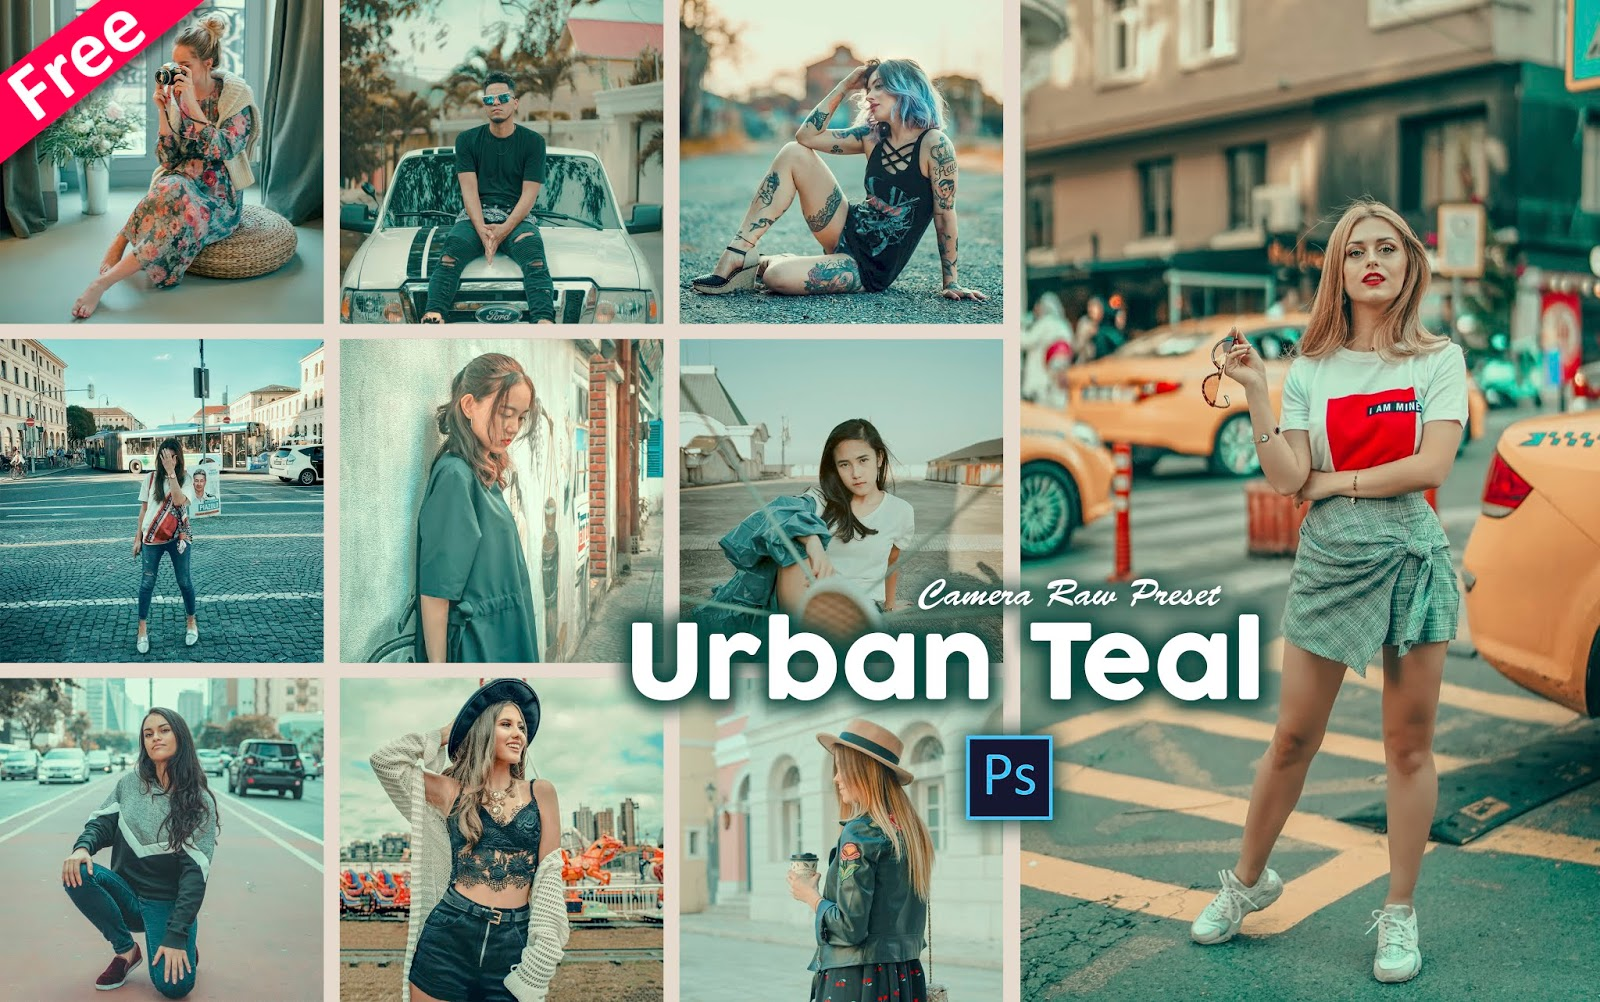 Urban Teal Tone Camera Raw Presets for Free | How to Make Urban Teal Effect to Photos in Photoshop cc